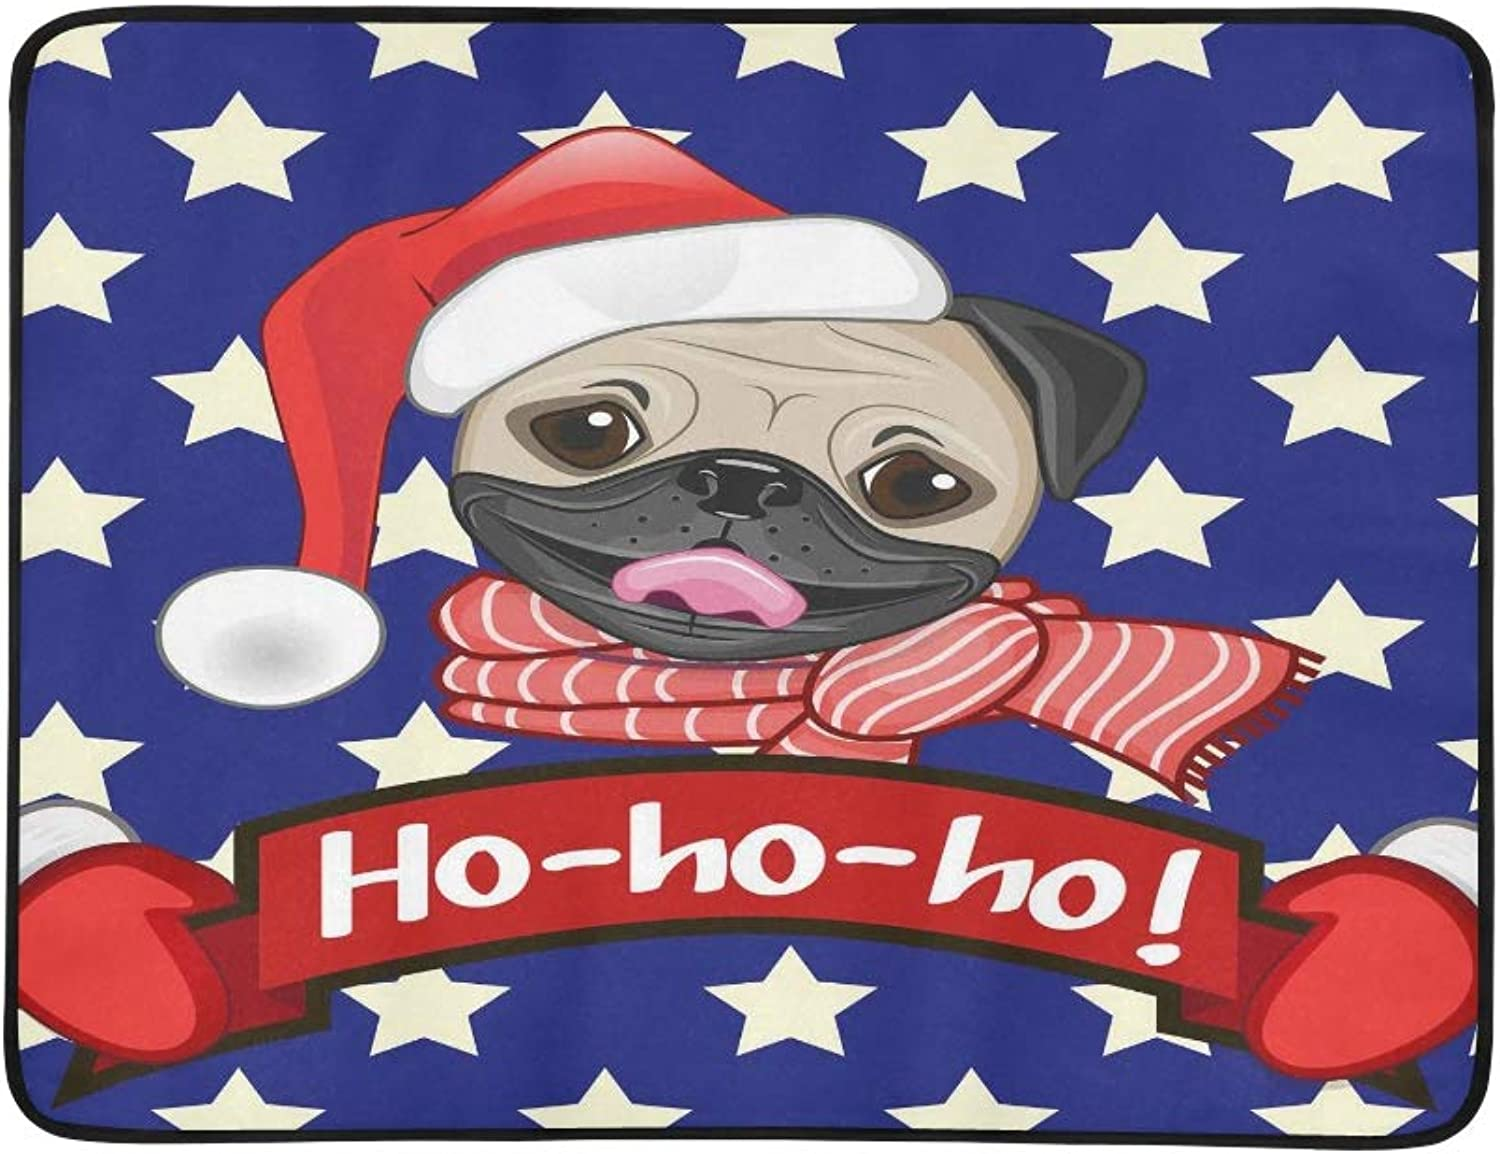 Christmas Illustration of Cartoon Pug Dog in A San Pattern Portable and Foldable Blanket Mat 60x78 Inch Handy Mat for Camping Picnic Beach Indoor Outdoor Travel